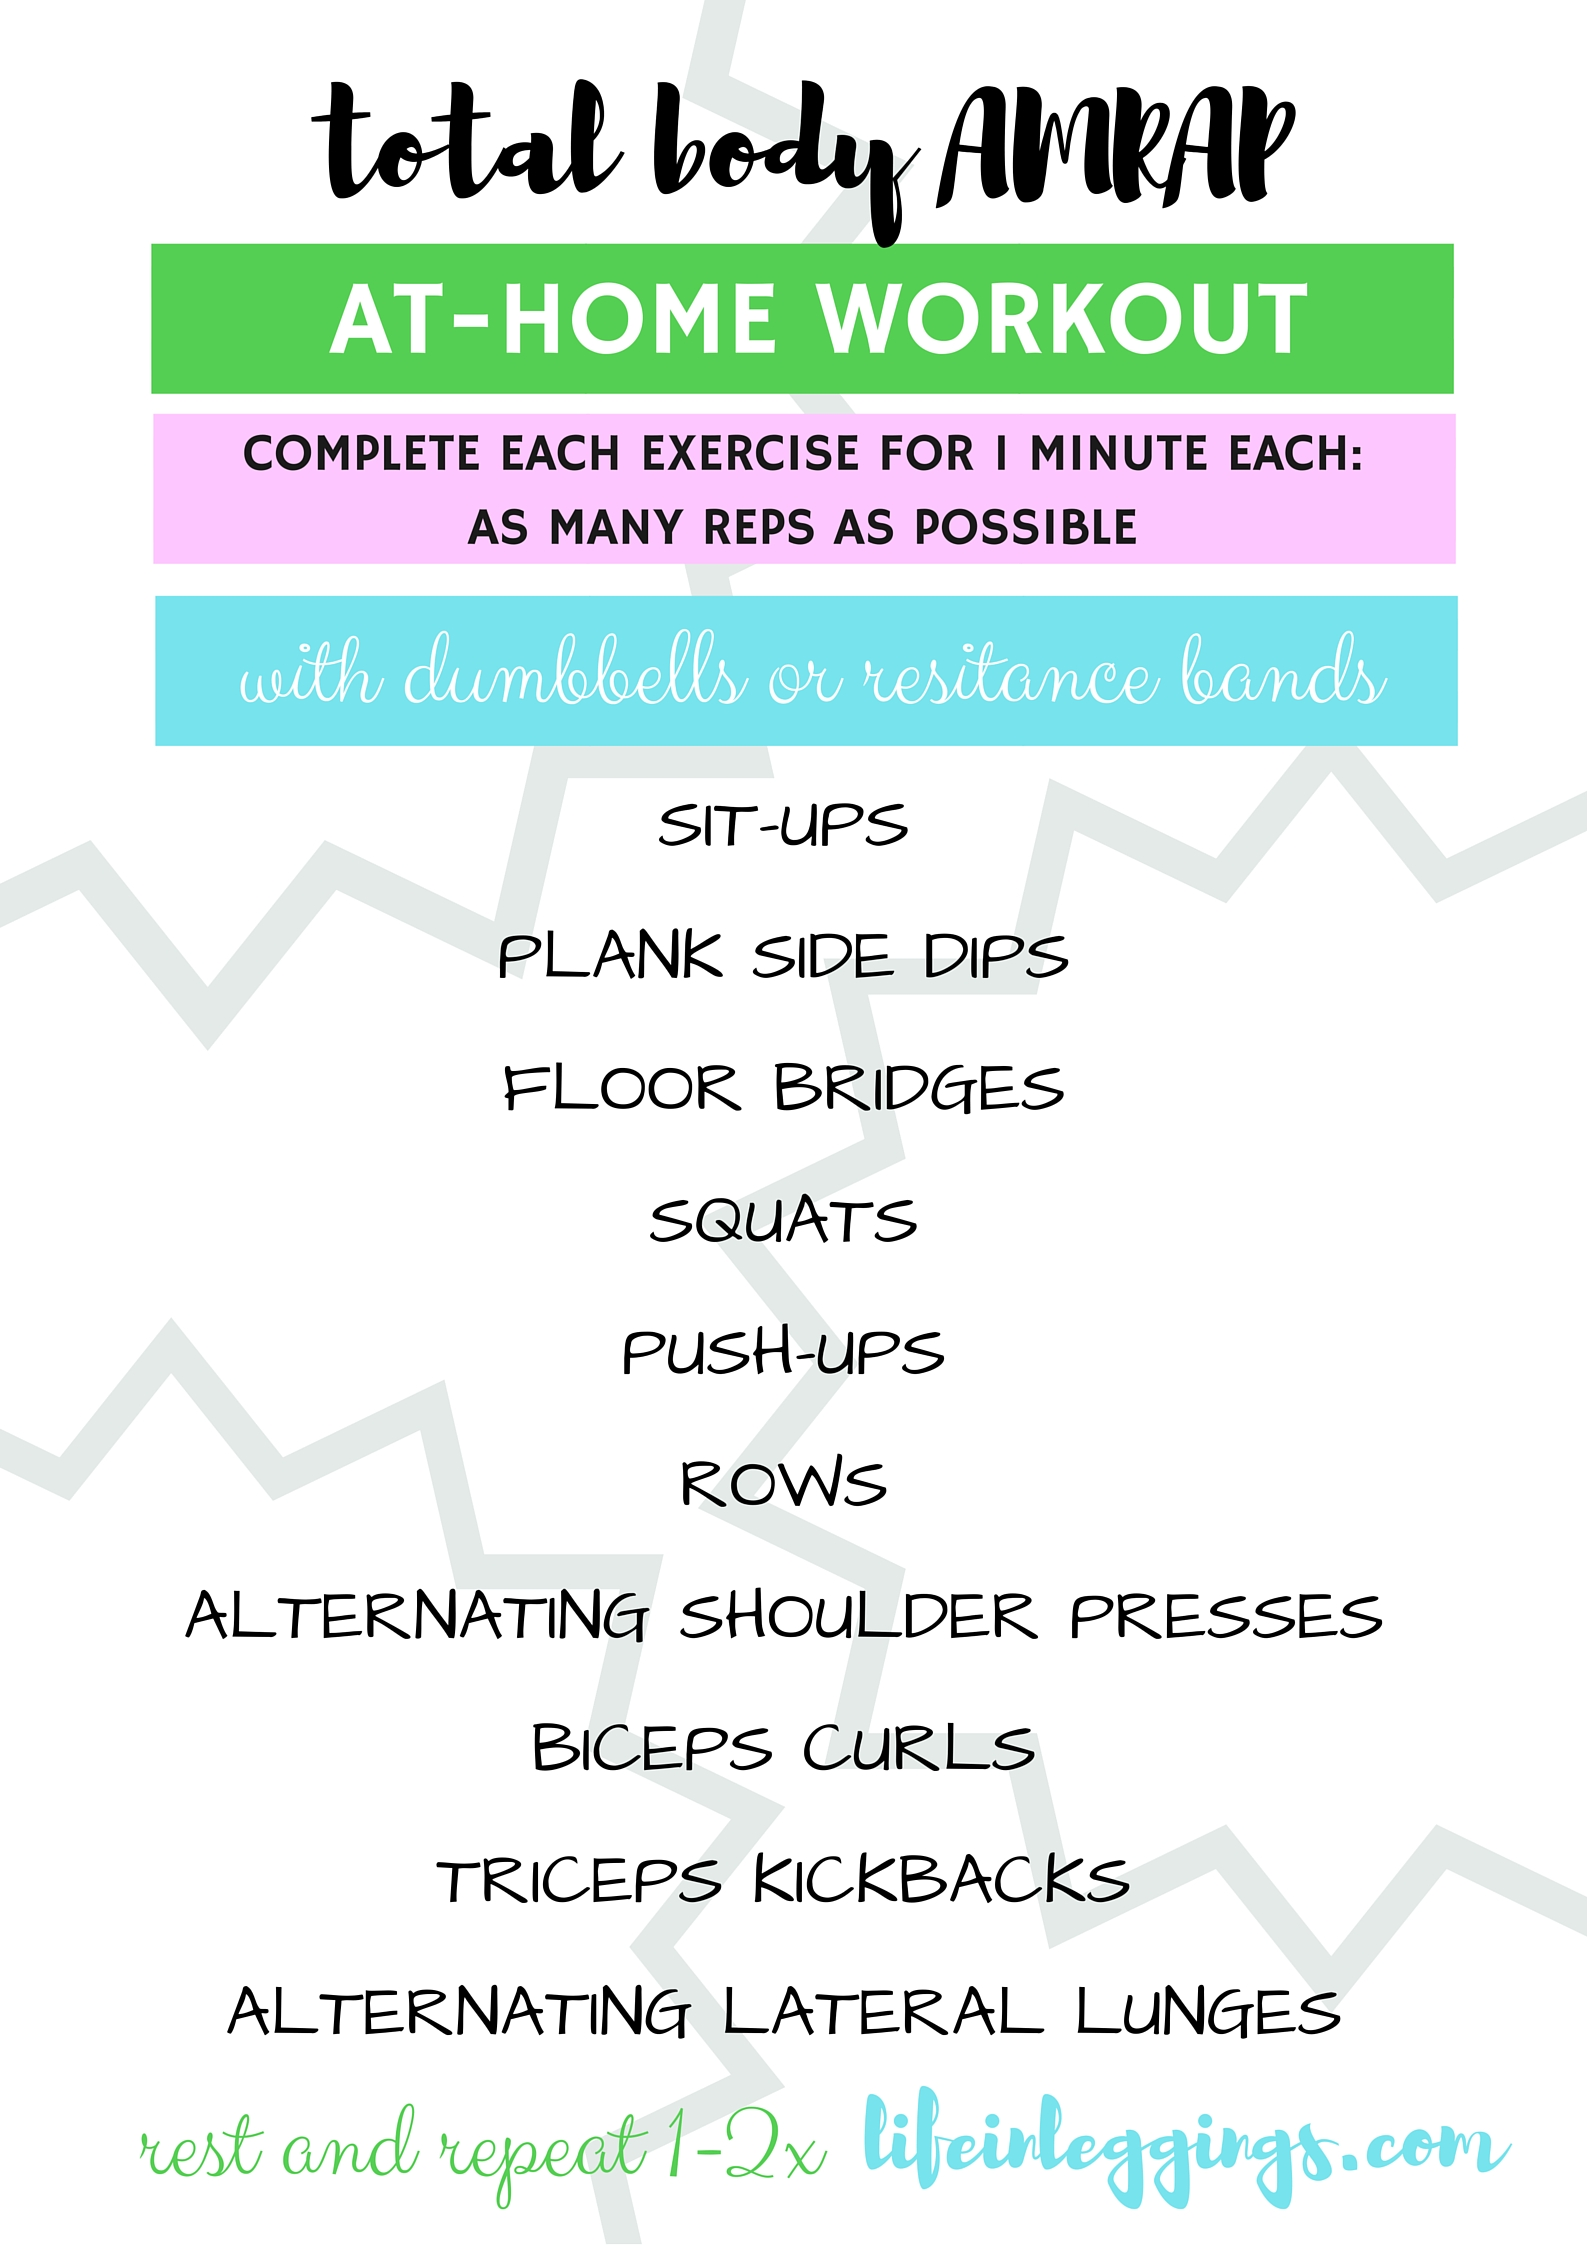 Total Body AMRAP At-Home Workout